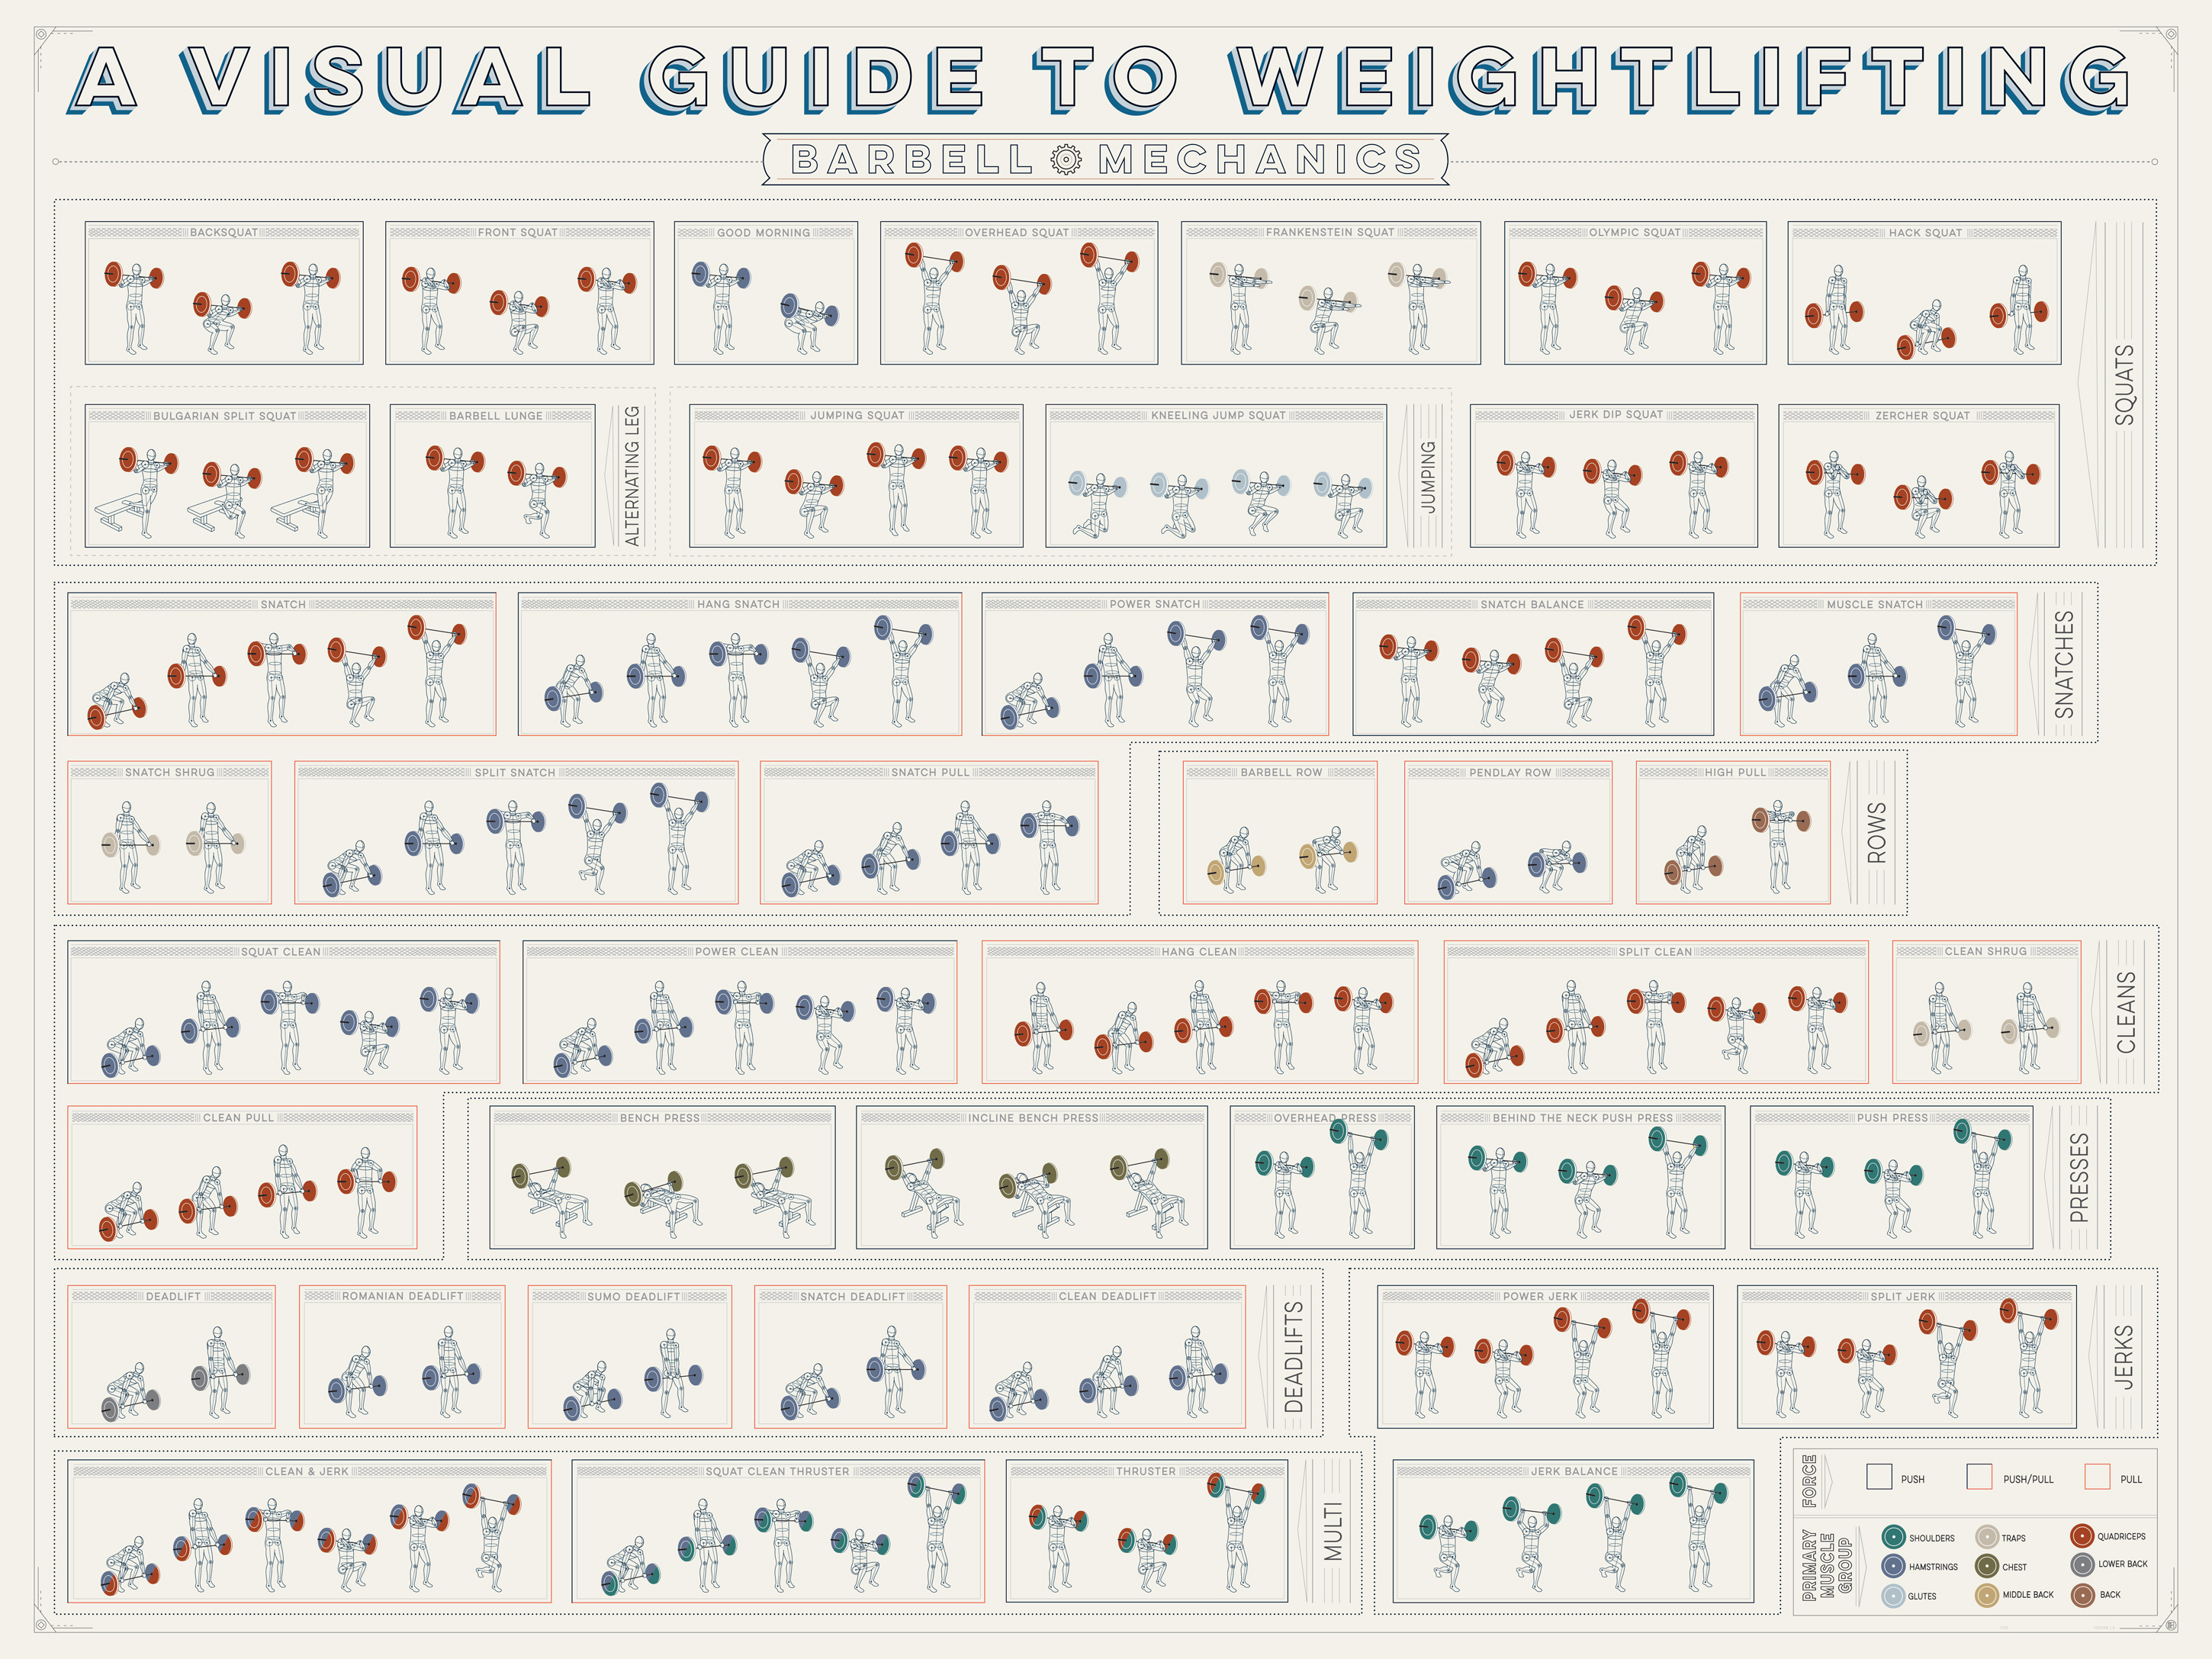 Visual Guide To Weightlifting: 46 Barbell Exercises - DesignTAXI.com